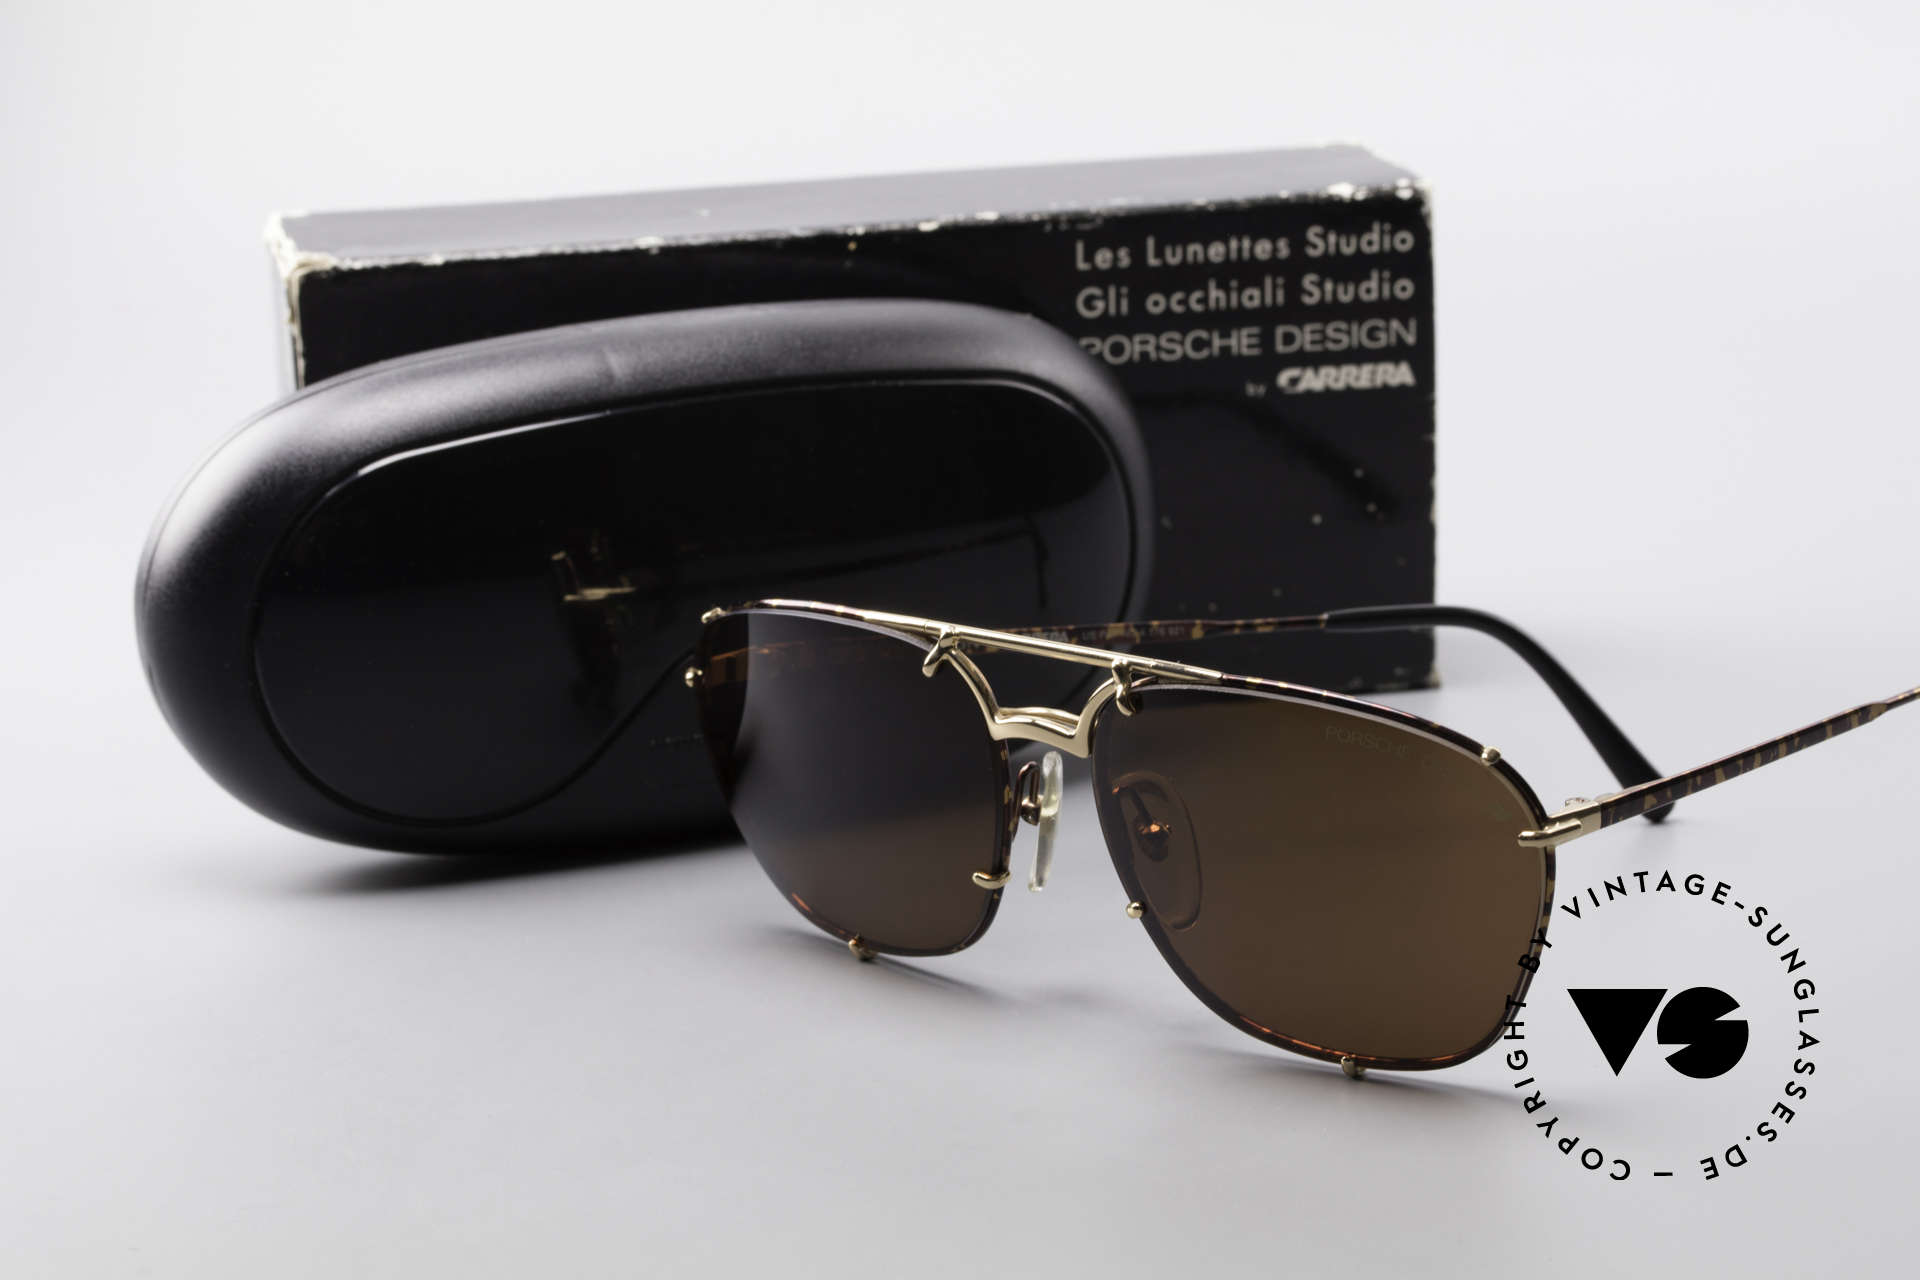 Porsche 5647 90s Classic Vintage Sunglasses, Size: medium, Made for Men